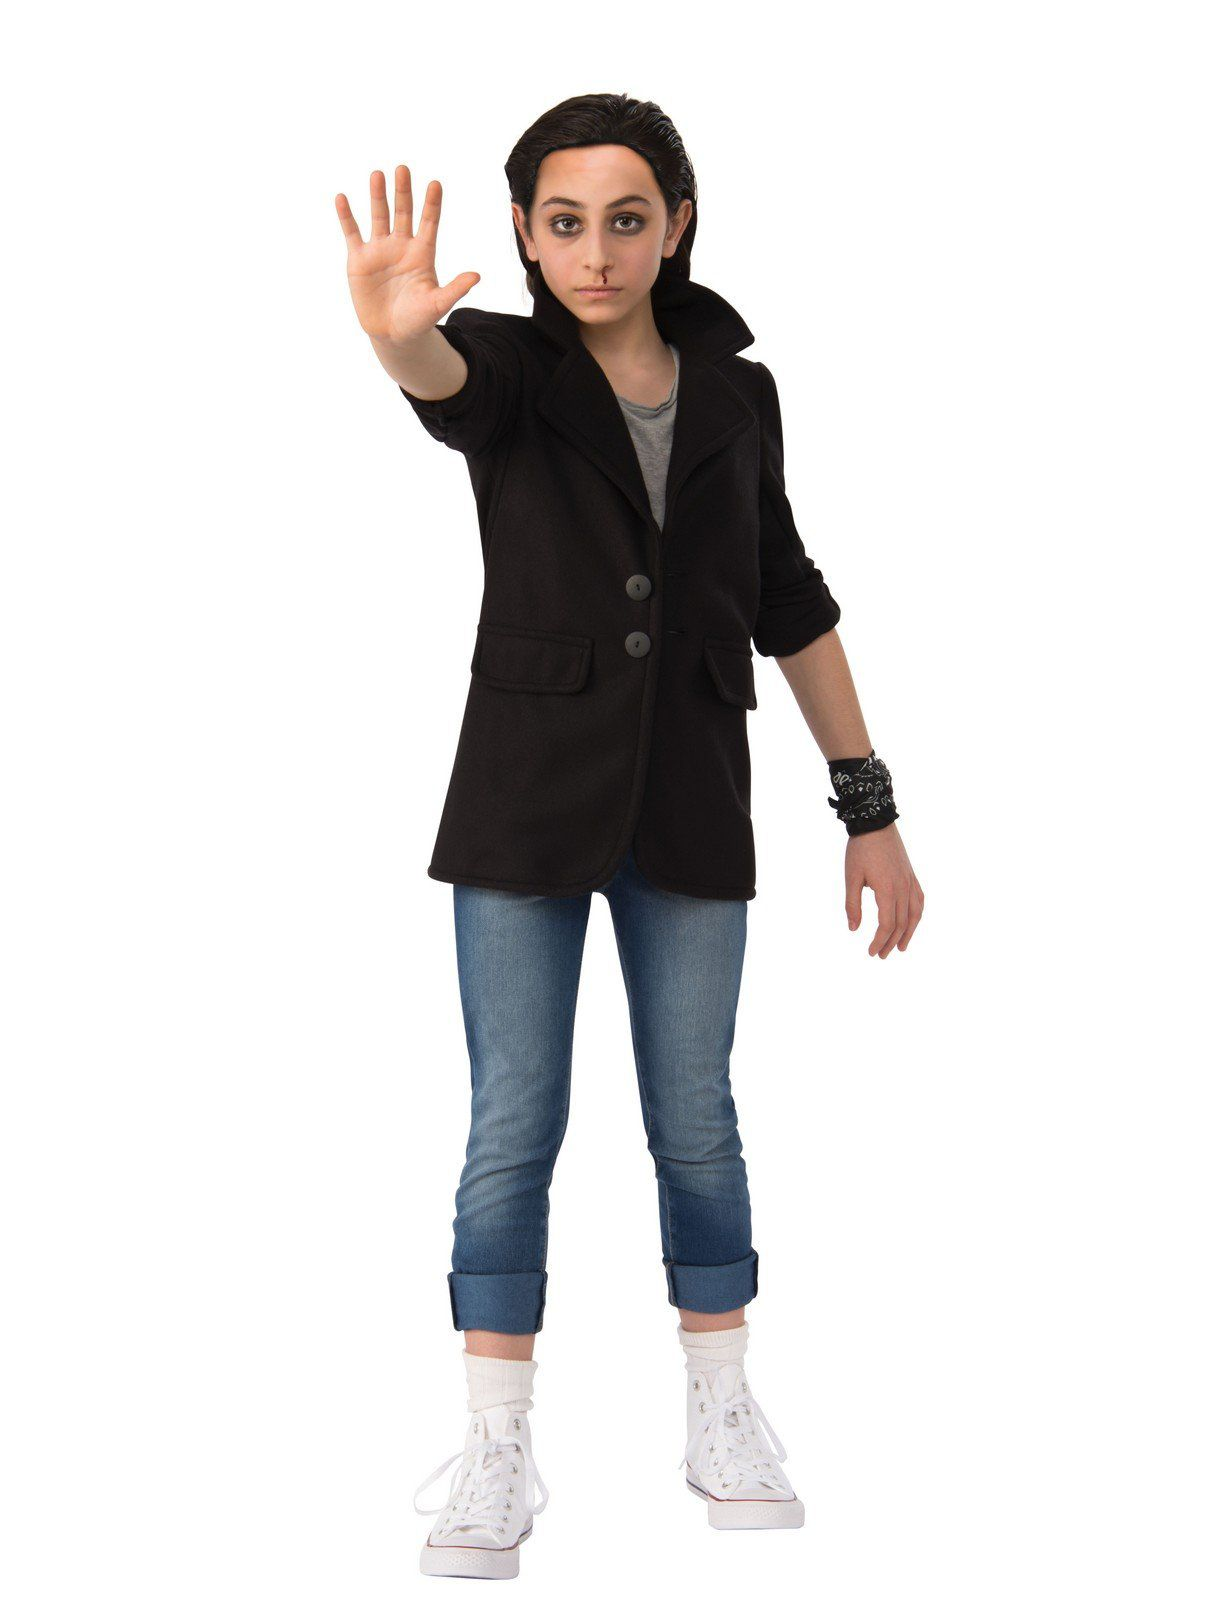 stranger things punk eleven outfit for girls